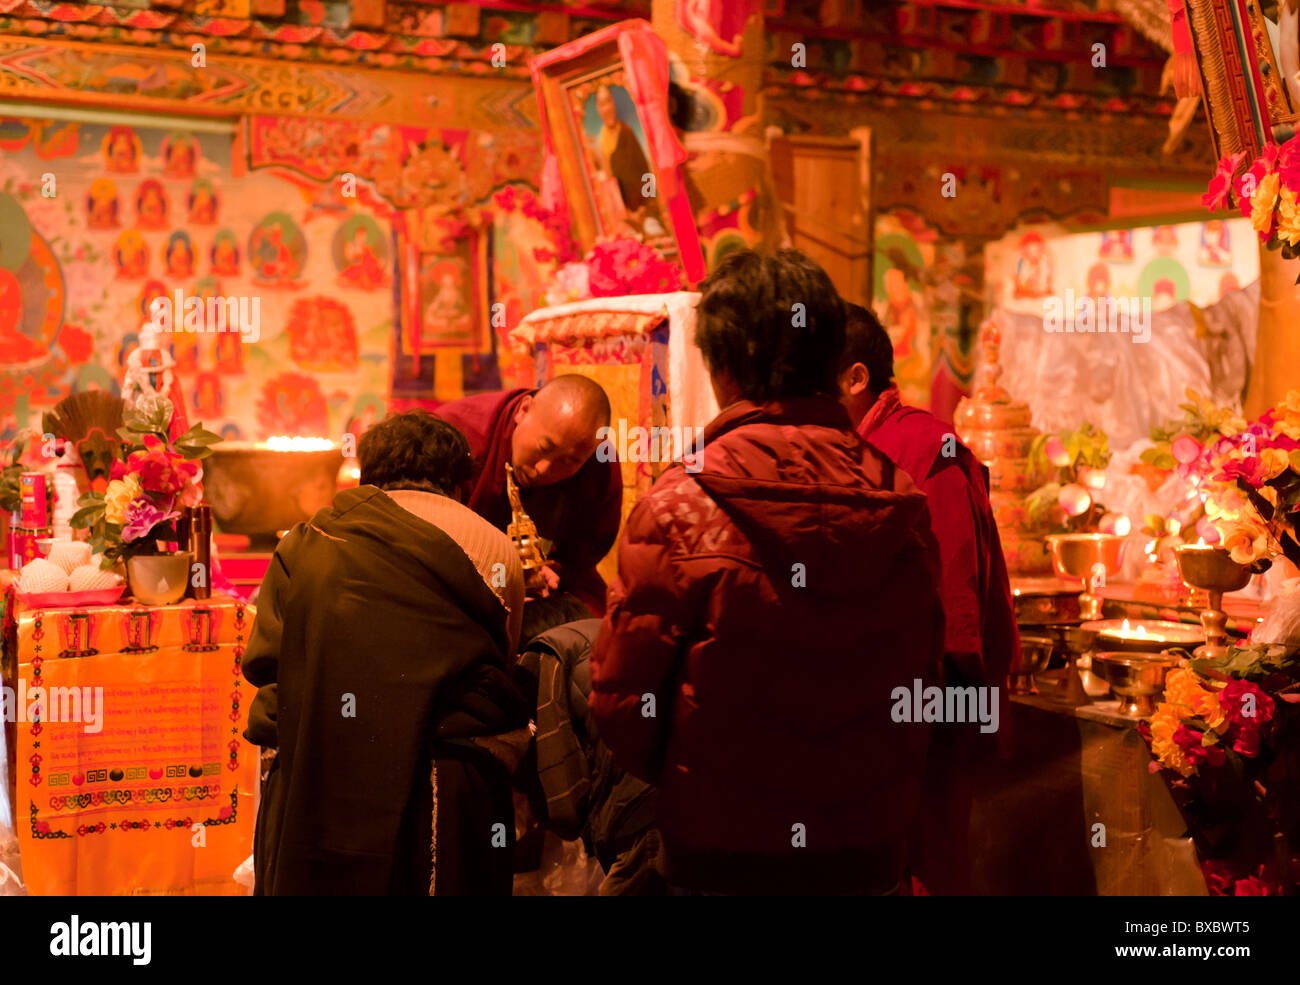 A Tibetan monk blesses lamaist adherents during a ceremony in Tagong Temple, Sichuan province, China - Stock Image